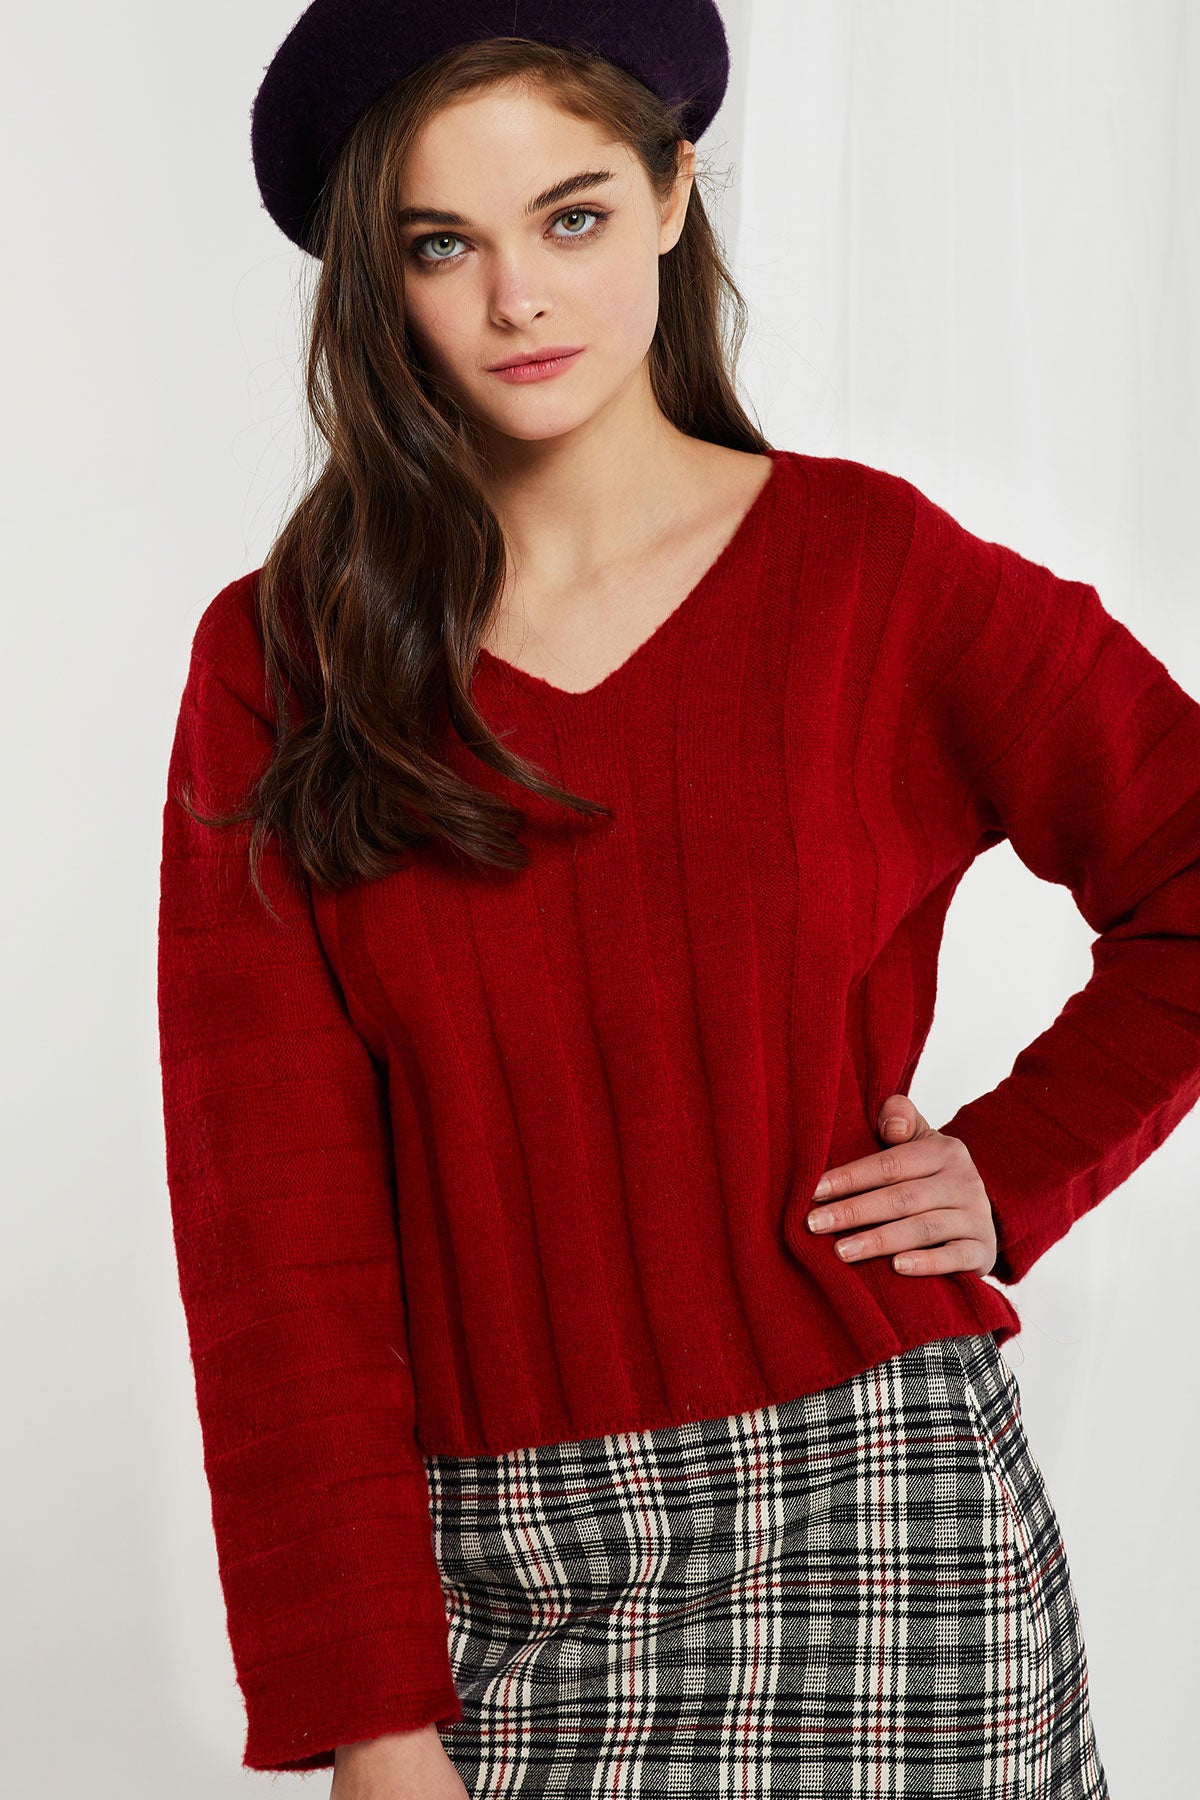 Britt Flat Ribbed Sweater